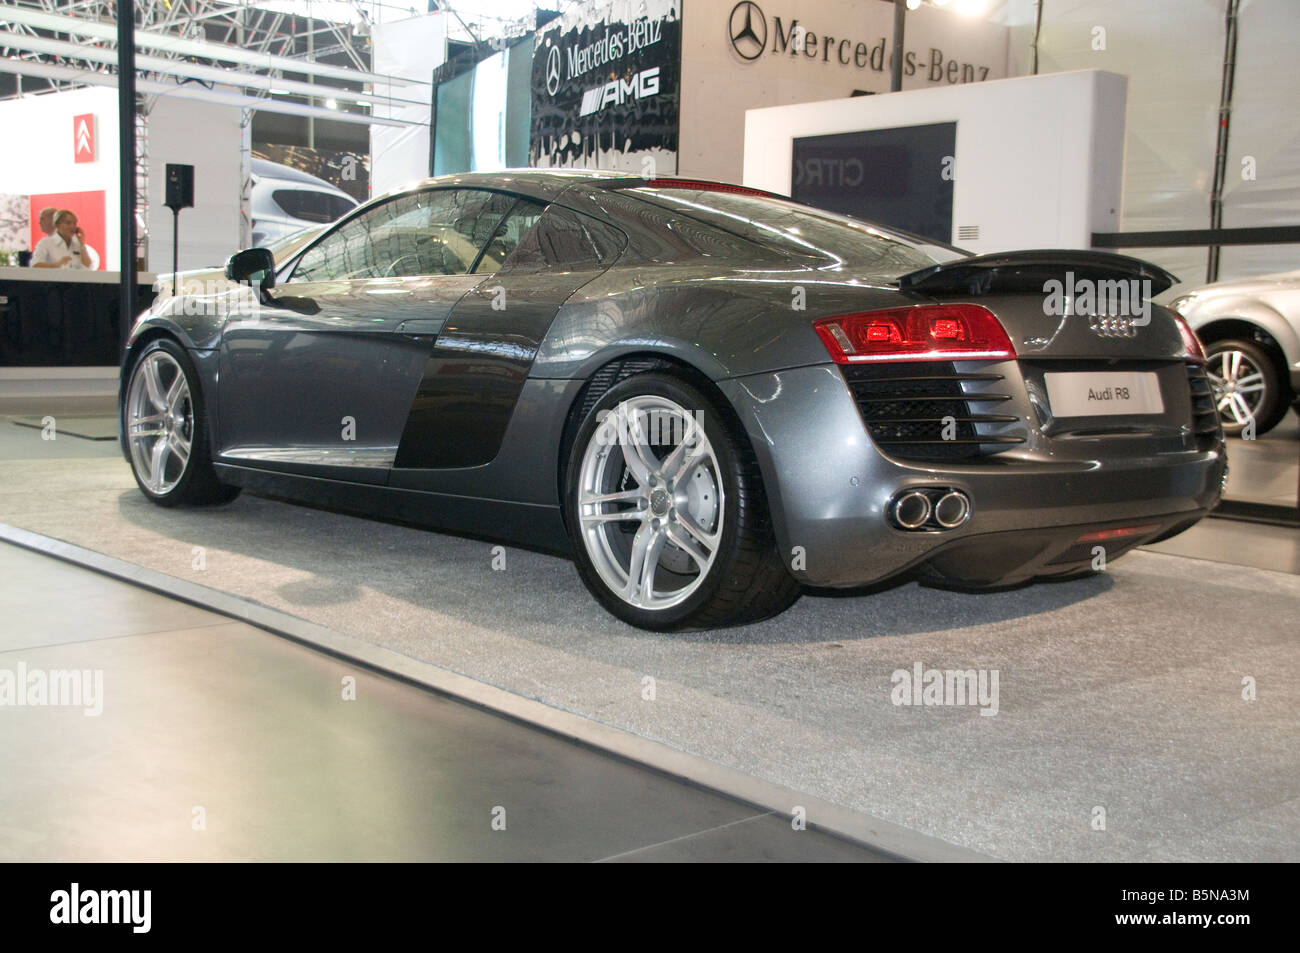 Audi R8 V10 Premiun Sports Car   Stock Image